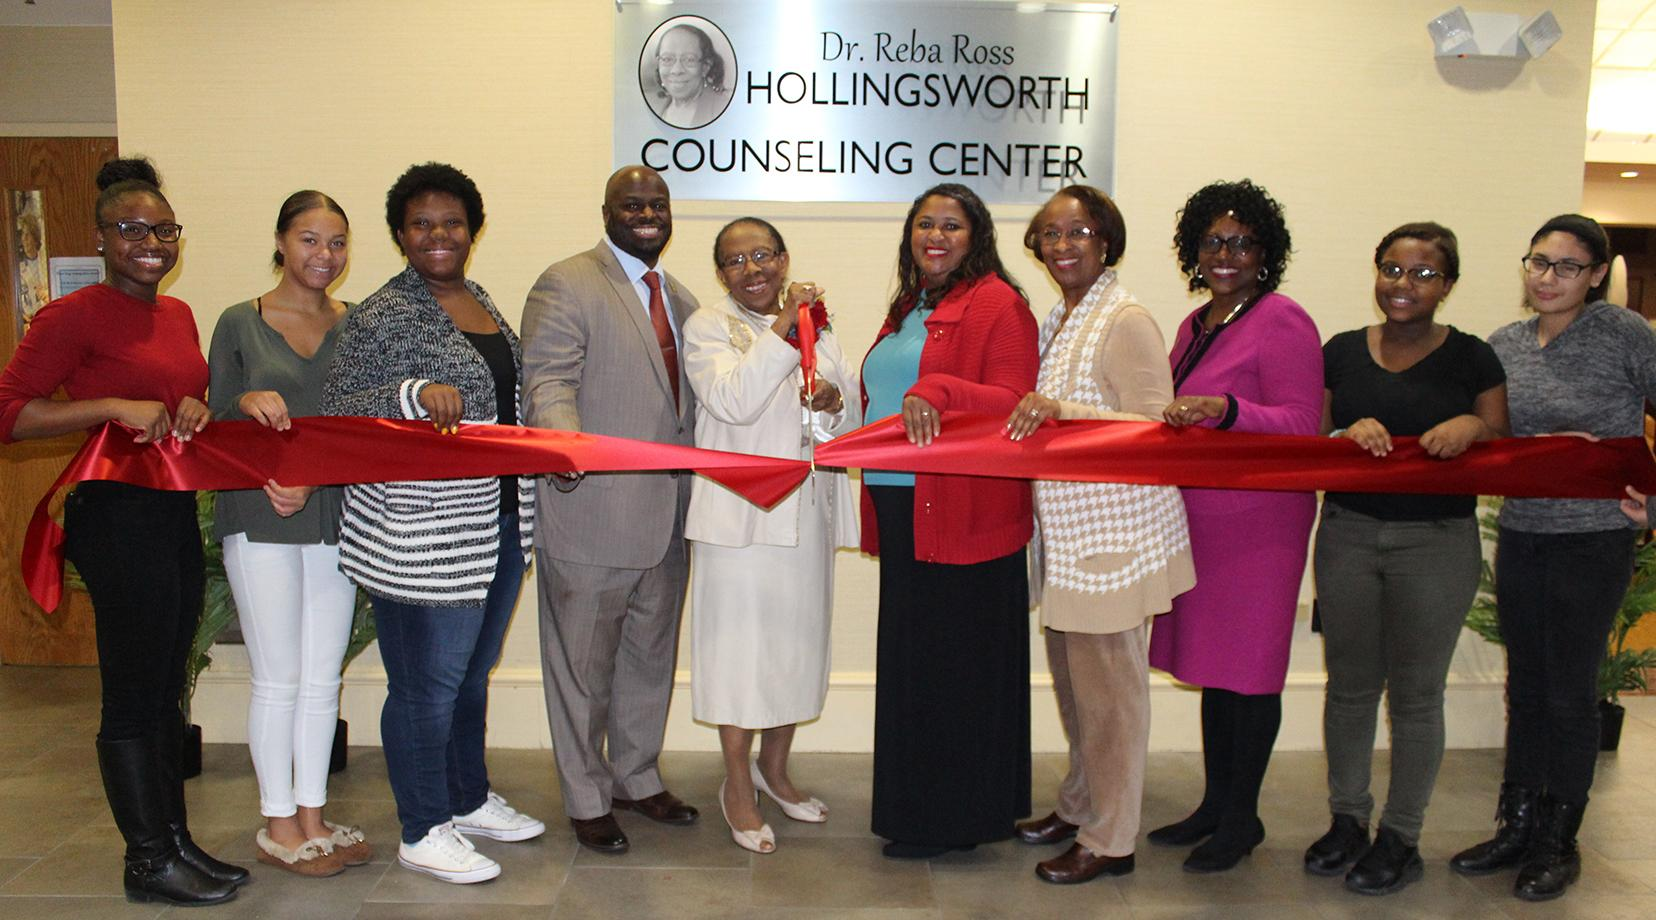 <p>The opening of the Dr. Reba Ross Hollingsworth Counseling Center at the Early College High School at Delaware State University was recently celebrated with a ribbon-cutting ceremony.</p>